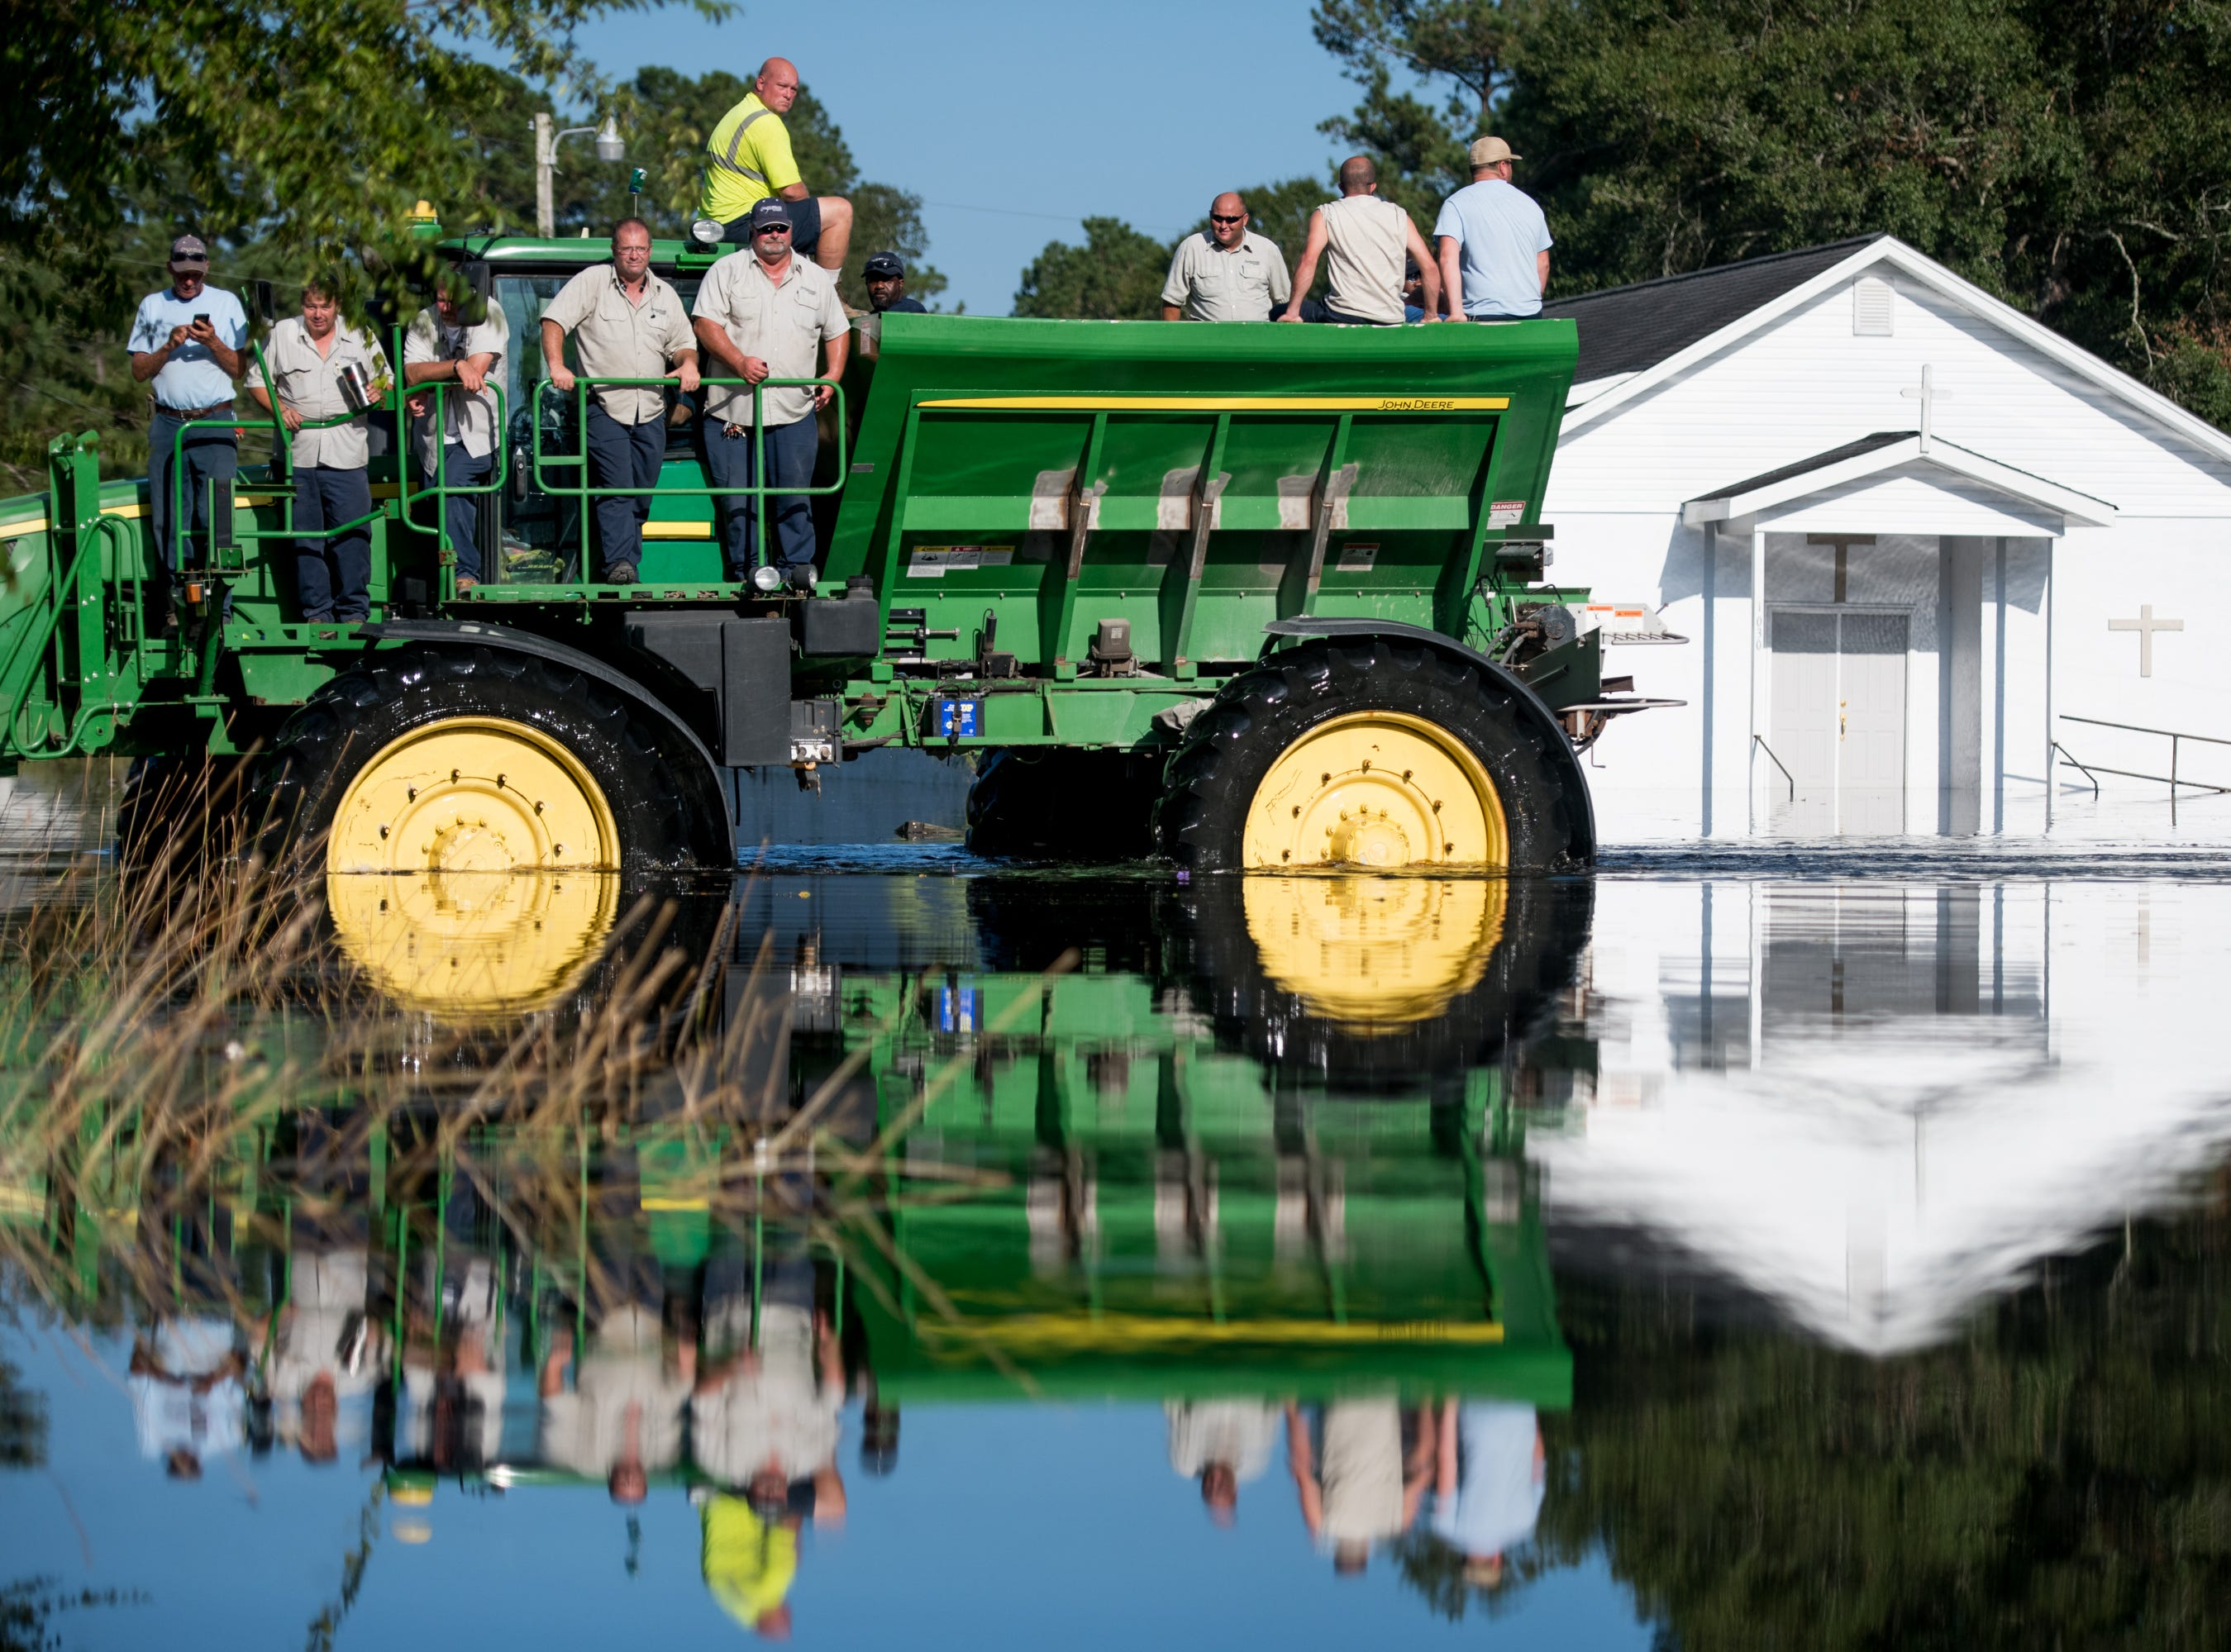 Workers uses farm machinery to navigate floodwaters from the Waccamaw River caused by Hurricane Florence on Sept. 26, 2018 in Bucksport, S. C.